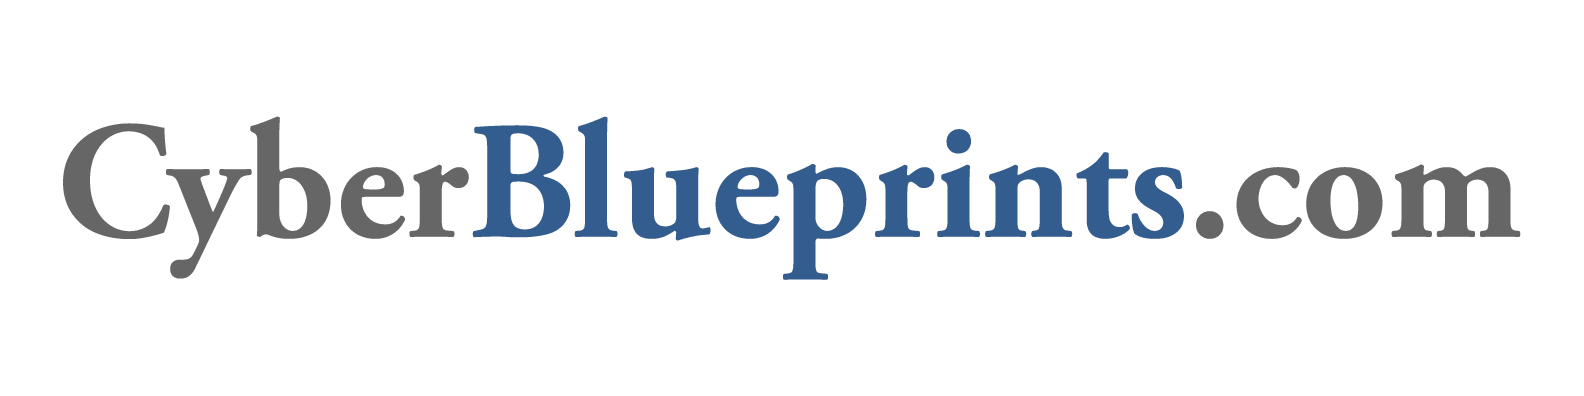 CyberBlueprints.com, Inc. | Digital Marketing Agency